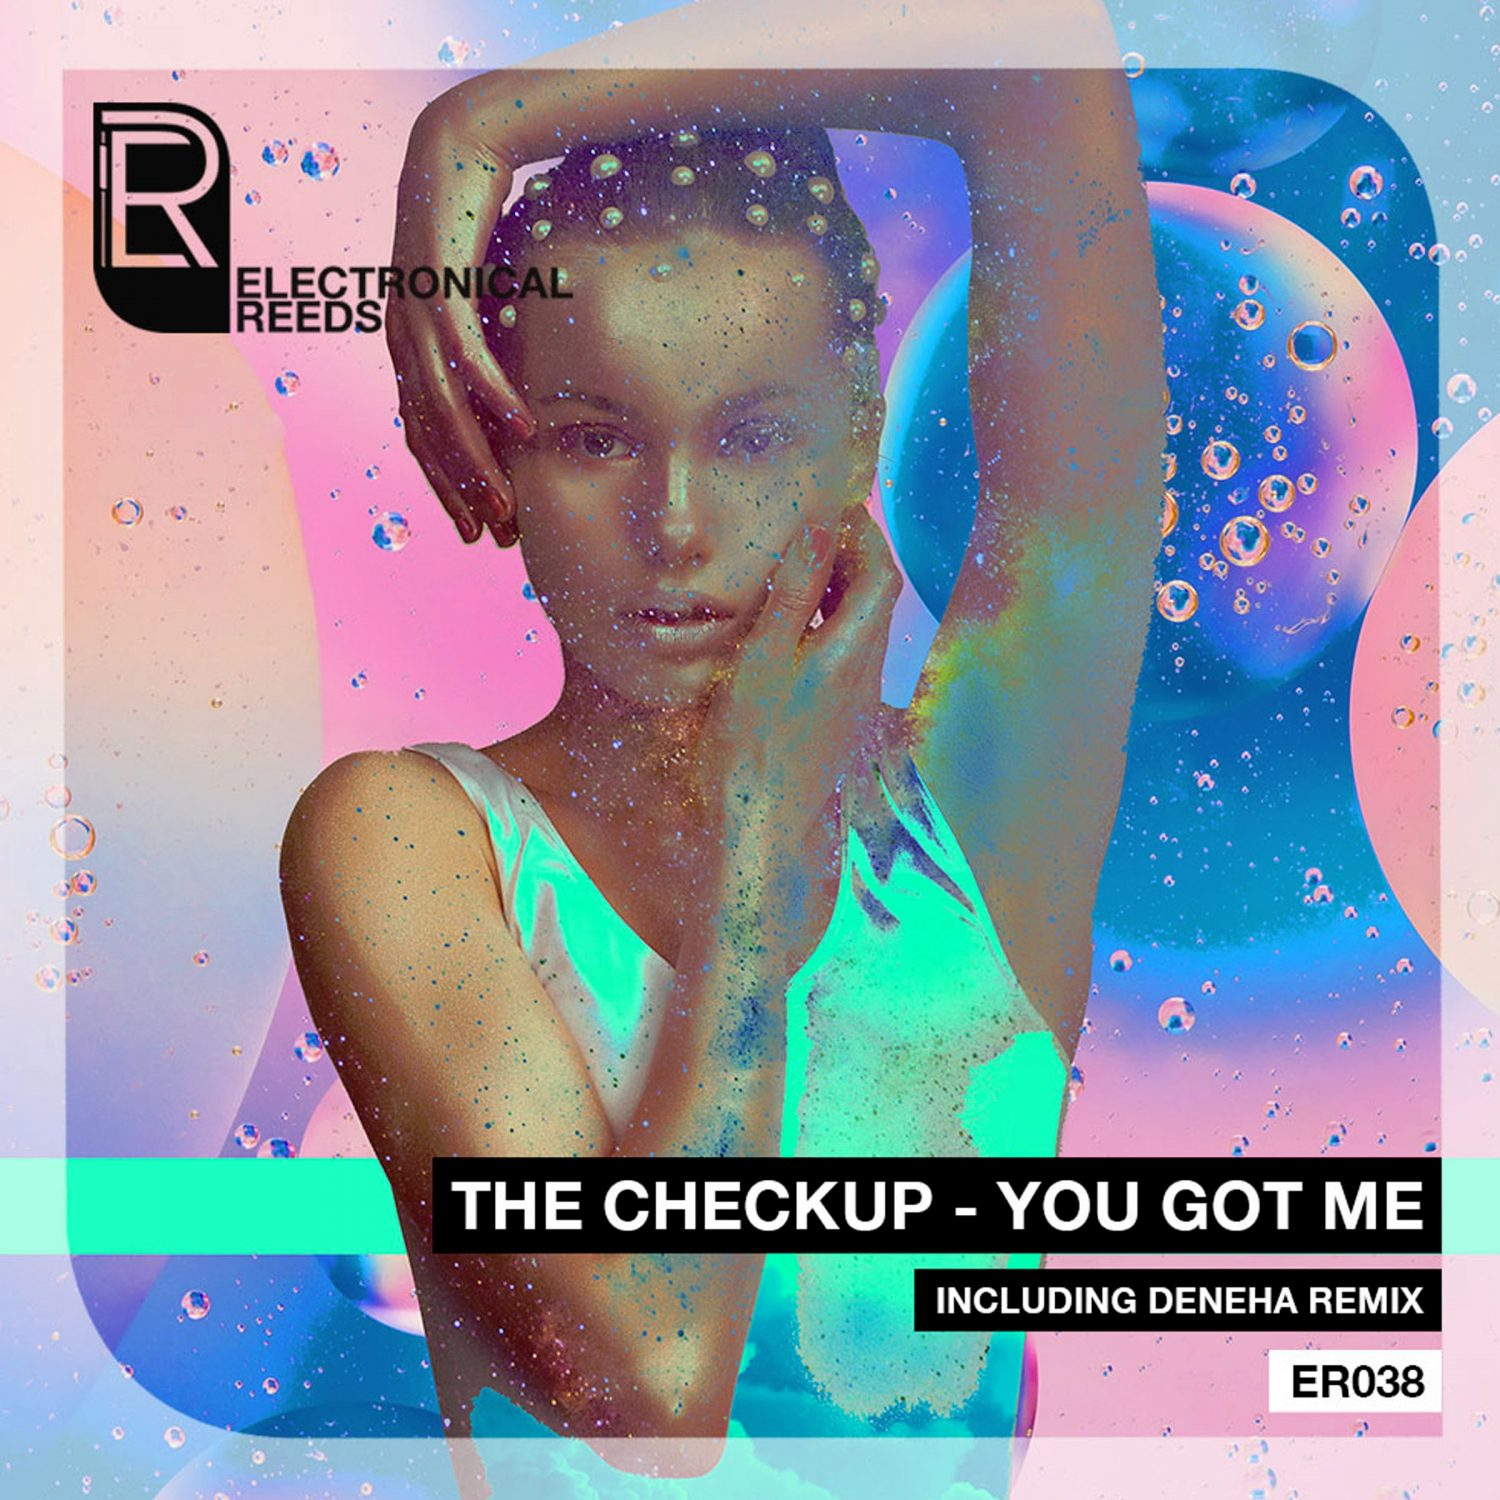 The Checkup - You Got Me (incl. Deneha Remix) - Electronical Reeds